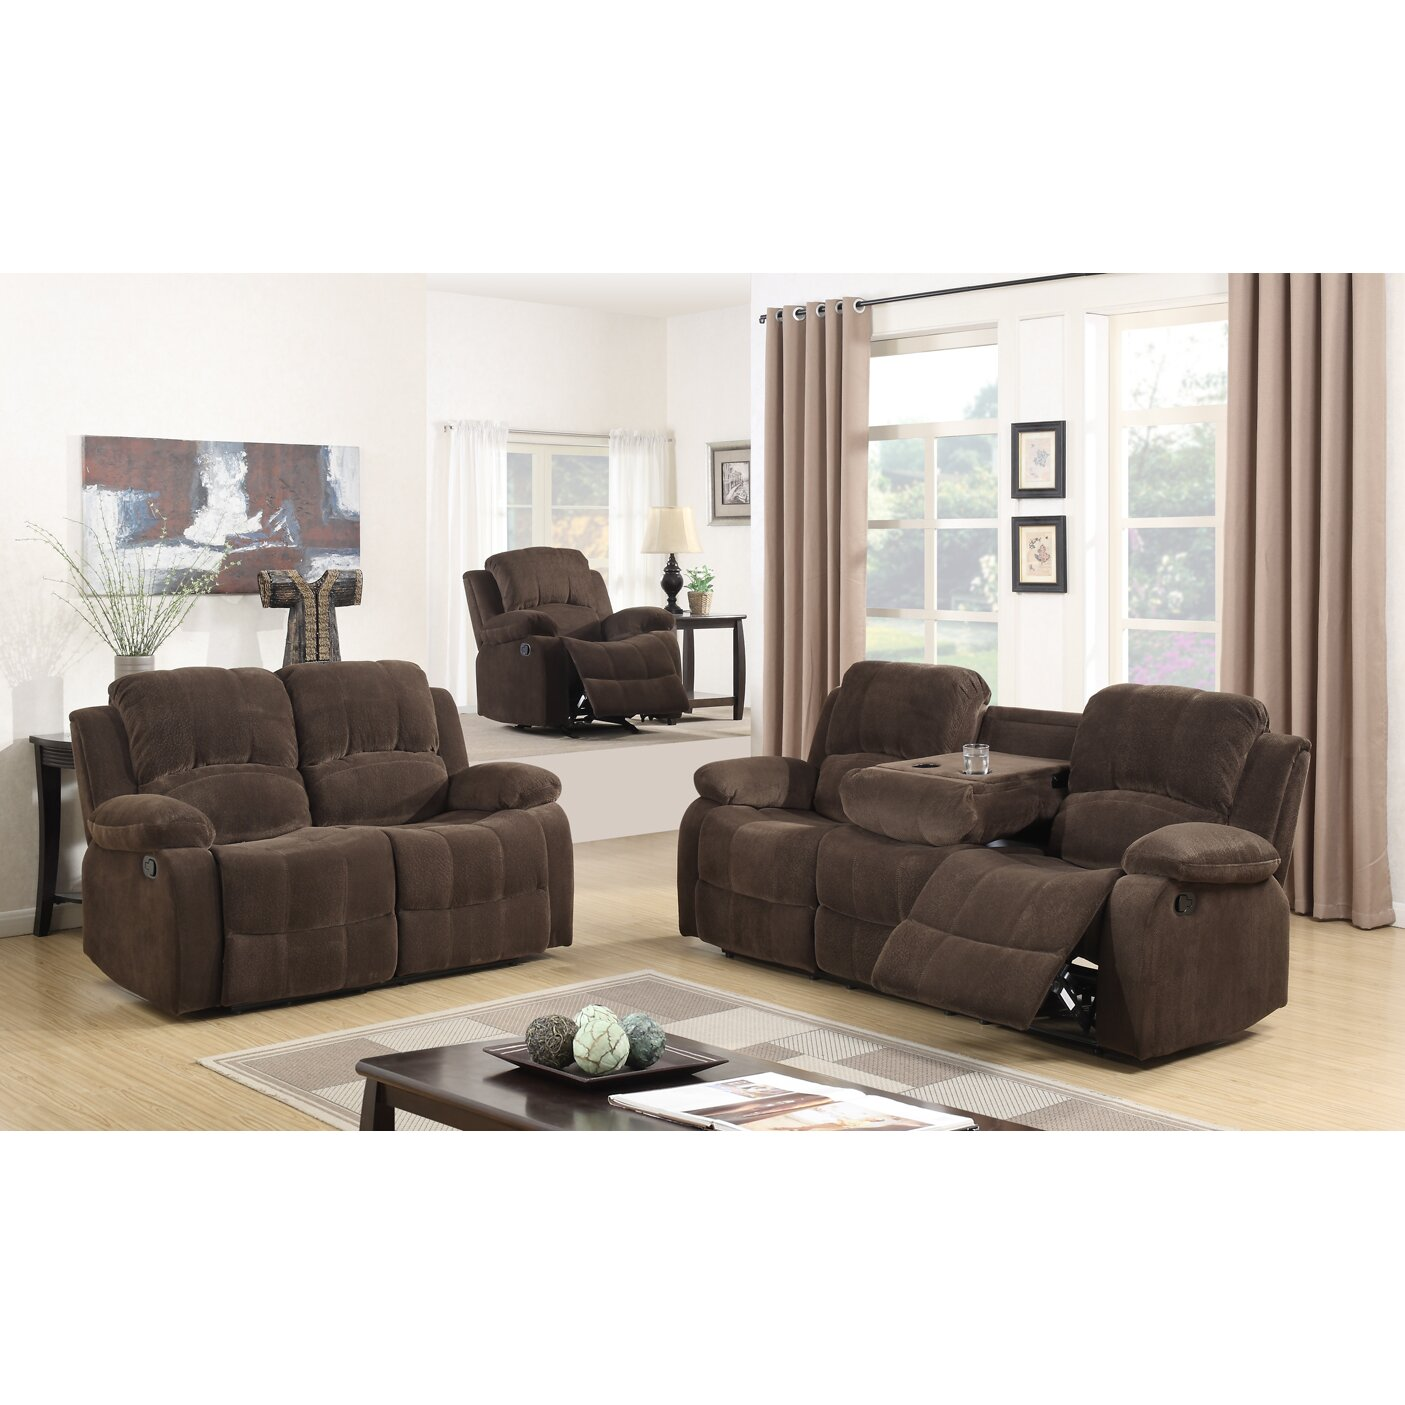 Best Quality Furniture Fabric 3 Piece Recliner Living Room Set Wayfair